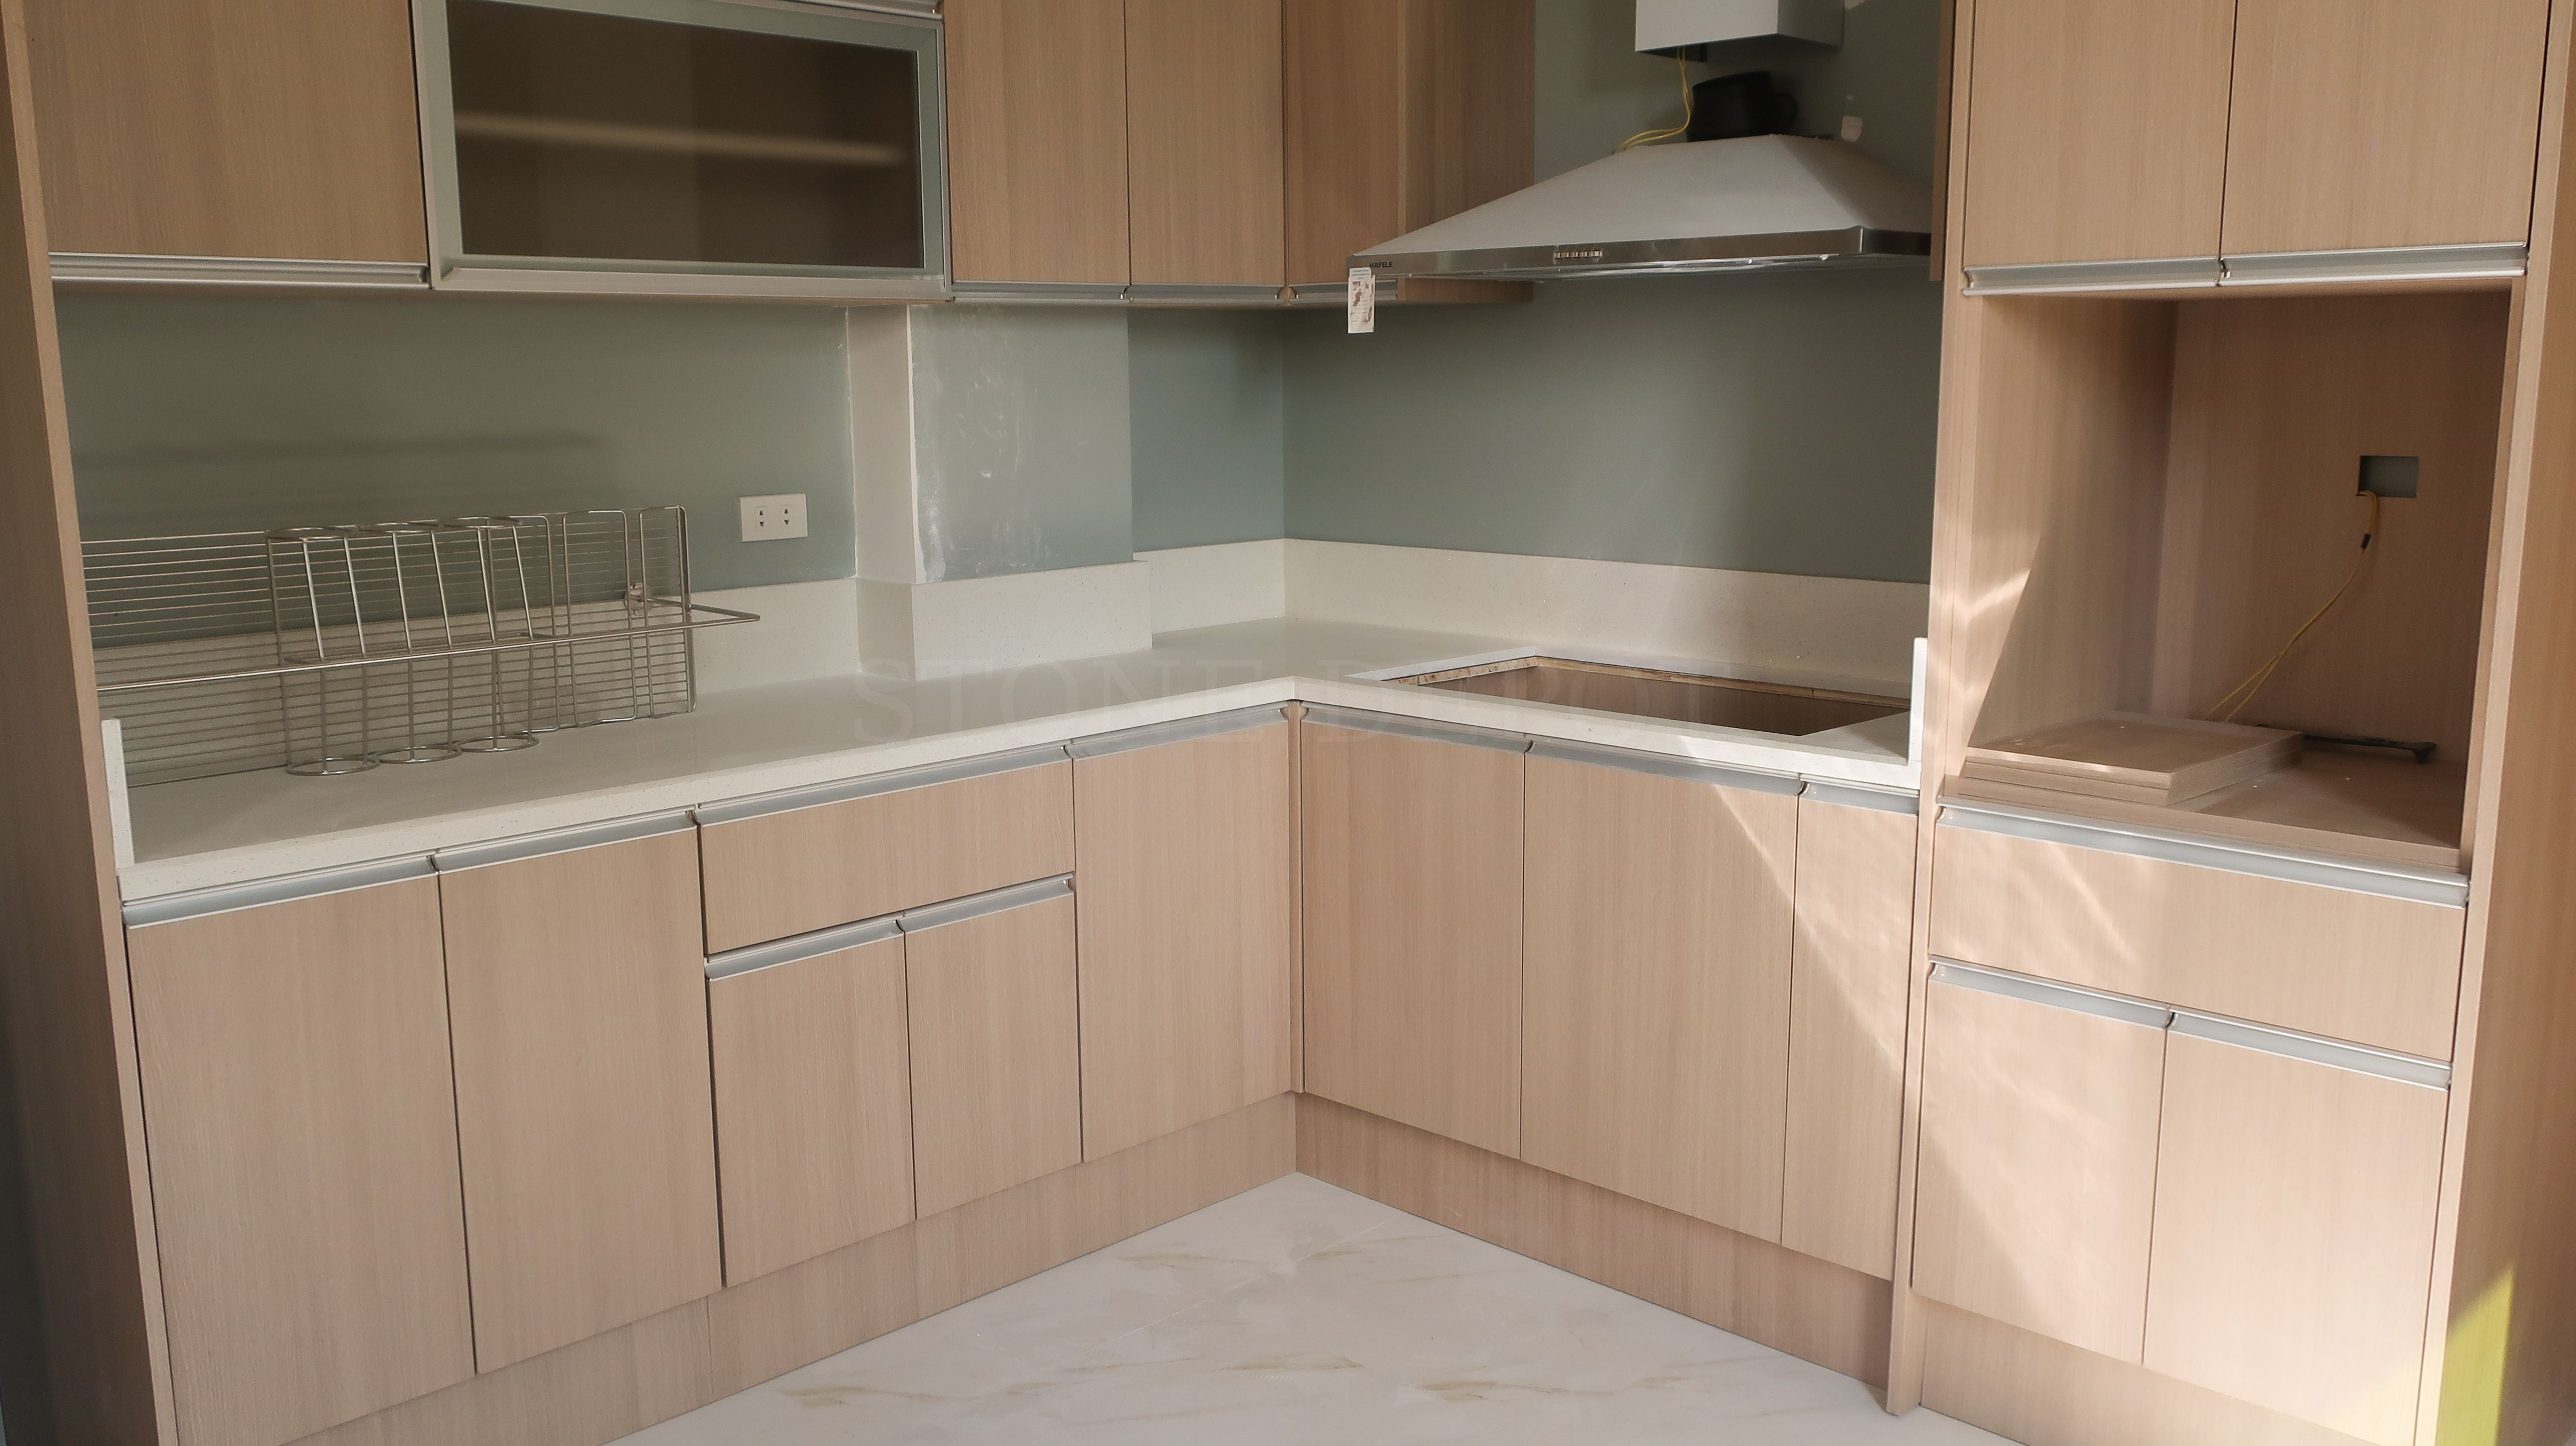 The Standard Height Of Kitchen Counters Is 36 Off The Floor